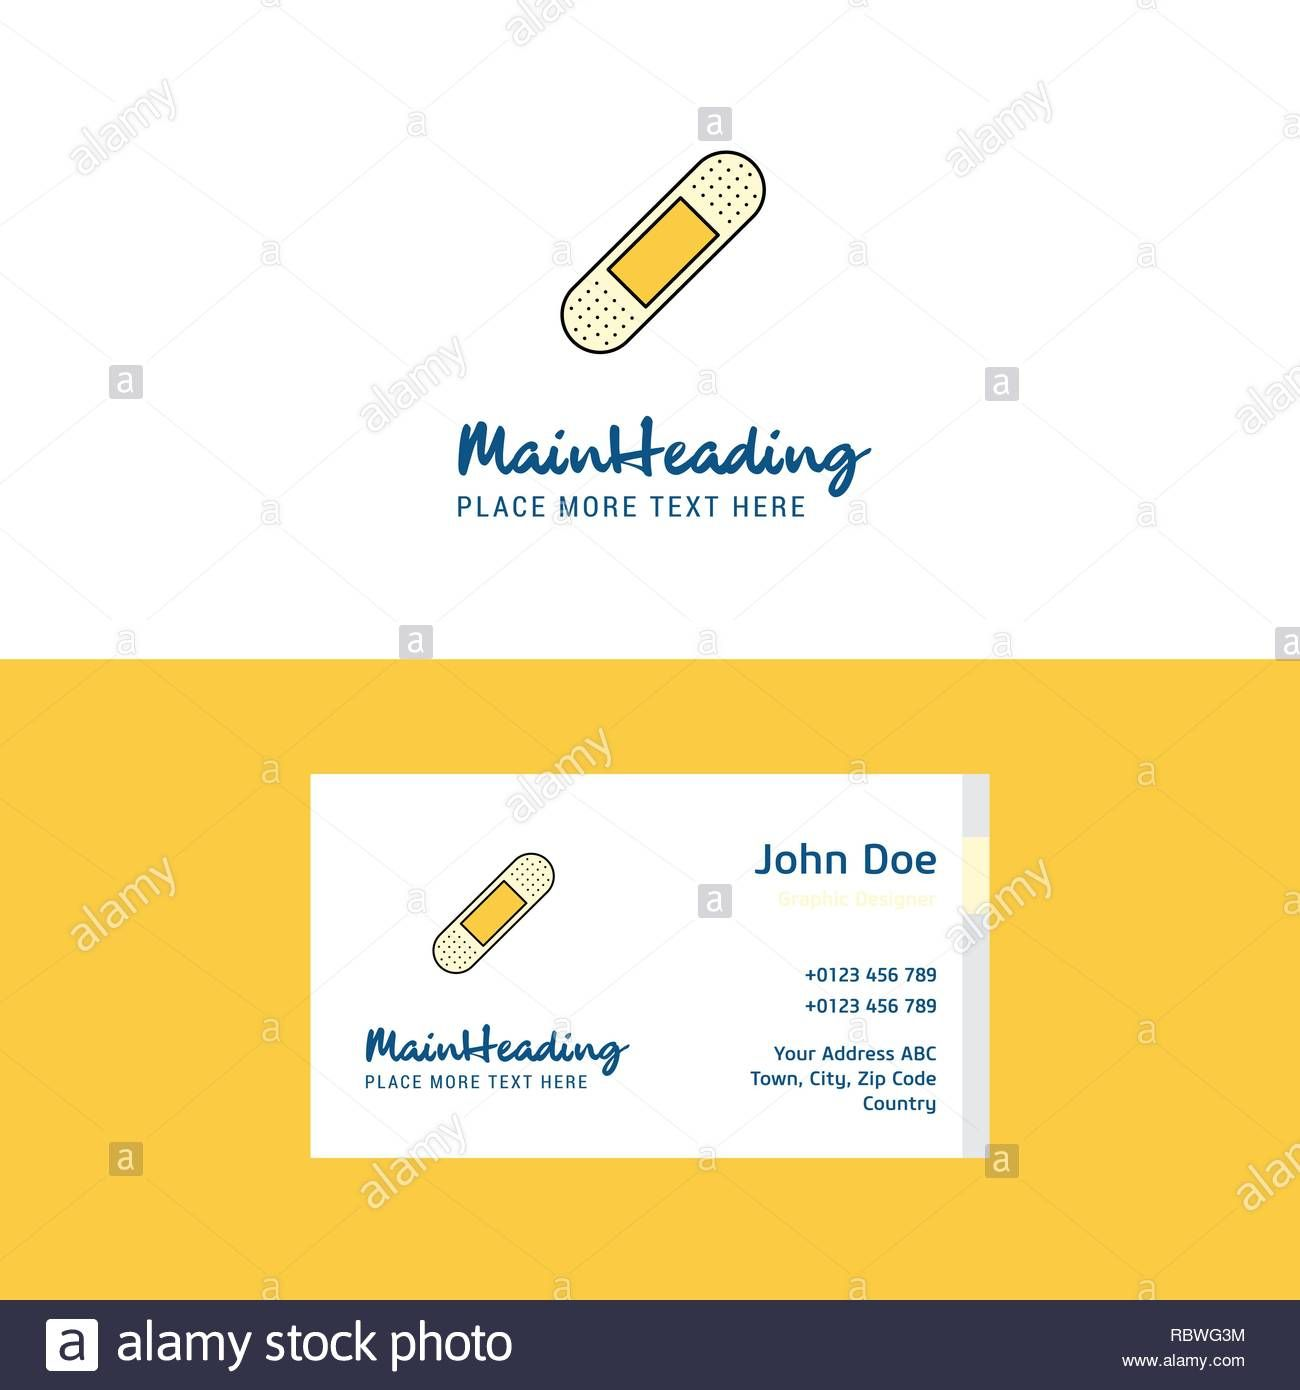 Flat Plaster Logo And Visiting Card Template Busienss Pertaining To Plastering Business Cards Te Visiting Card Templates Visiting Cards Business Card Template